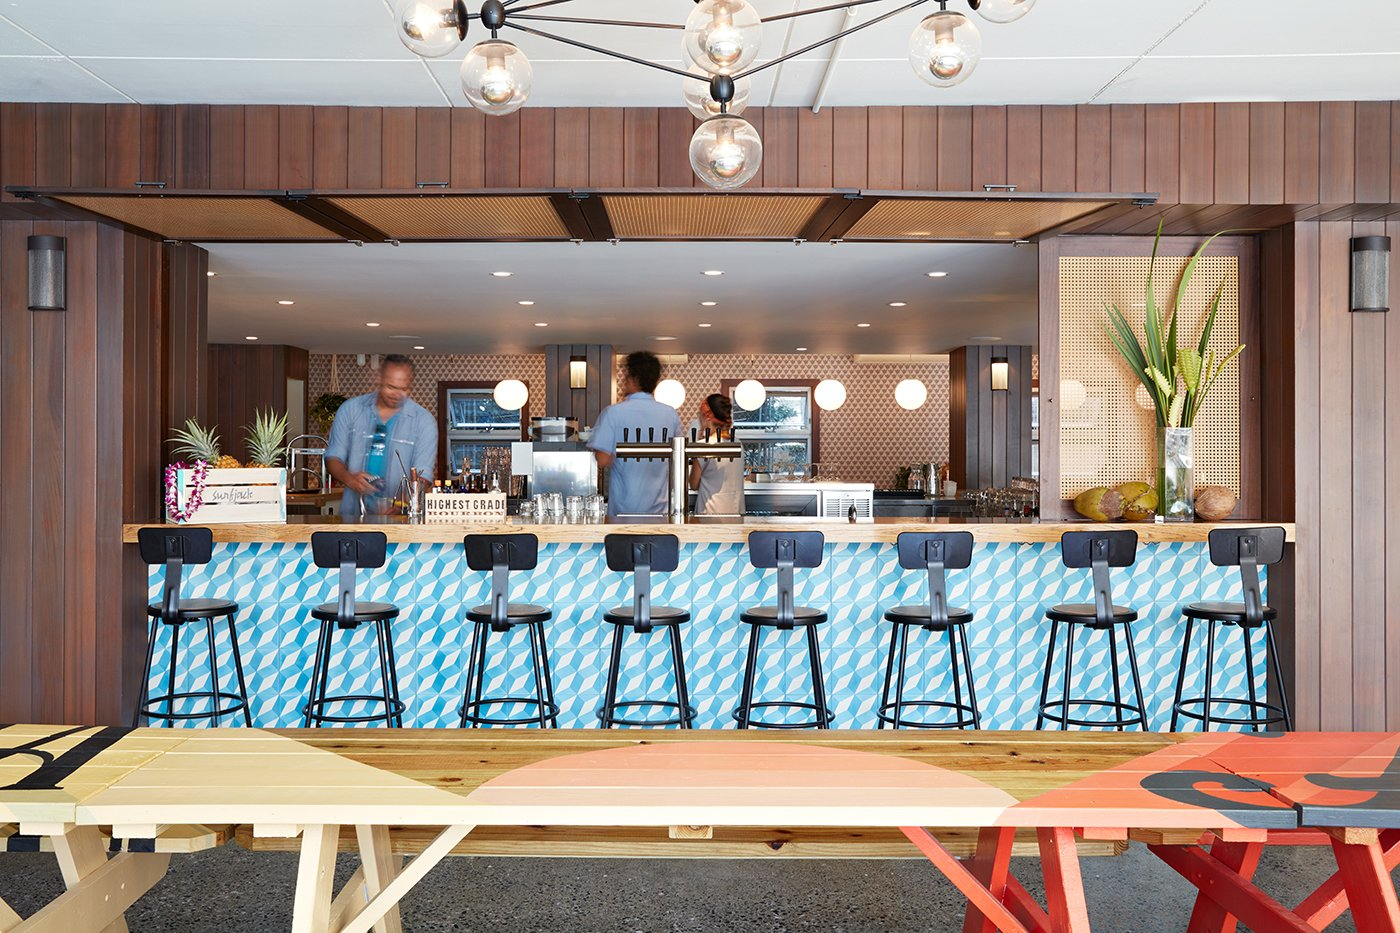 """As chef Ed Kenney's fourth eatery, Mahina & Sun's believes in, """"local first; organic whenever possible; with aloha always."""" The picnic tables next to the bar were hand-painted by local artist Jeff Gress.  Photo 6 of 14 in This Surf-Inspired Hotel Celebrates Waikiki's Creative Spirit and its Midcentury Roots"""